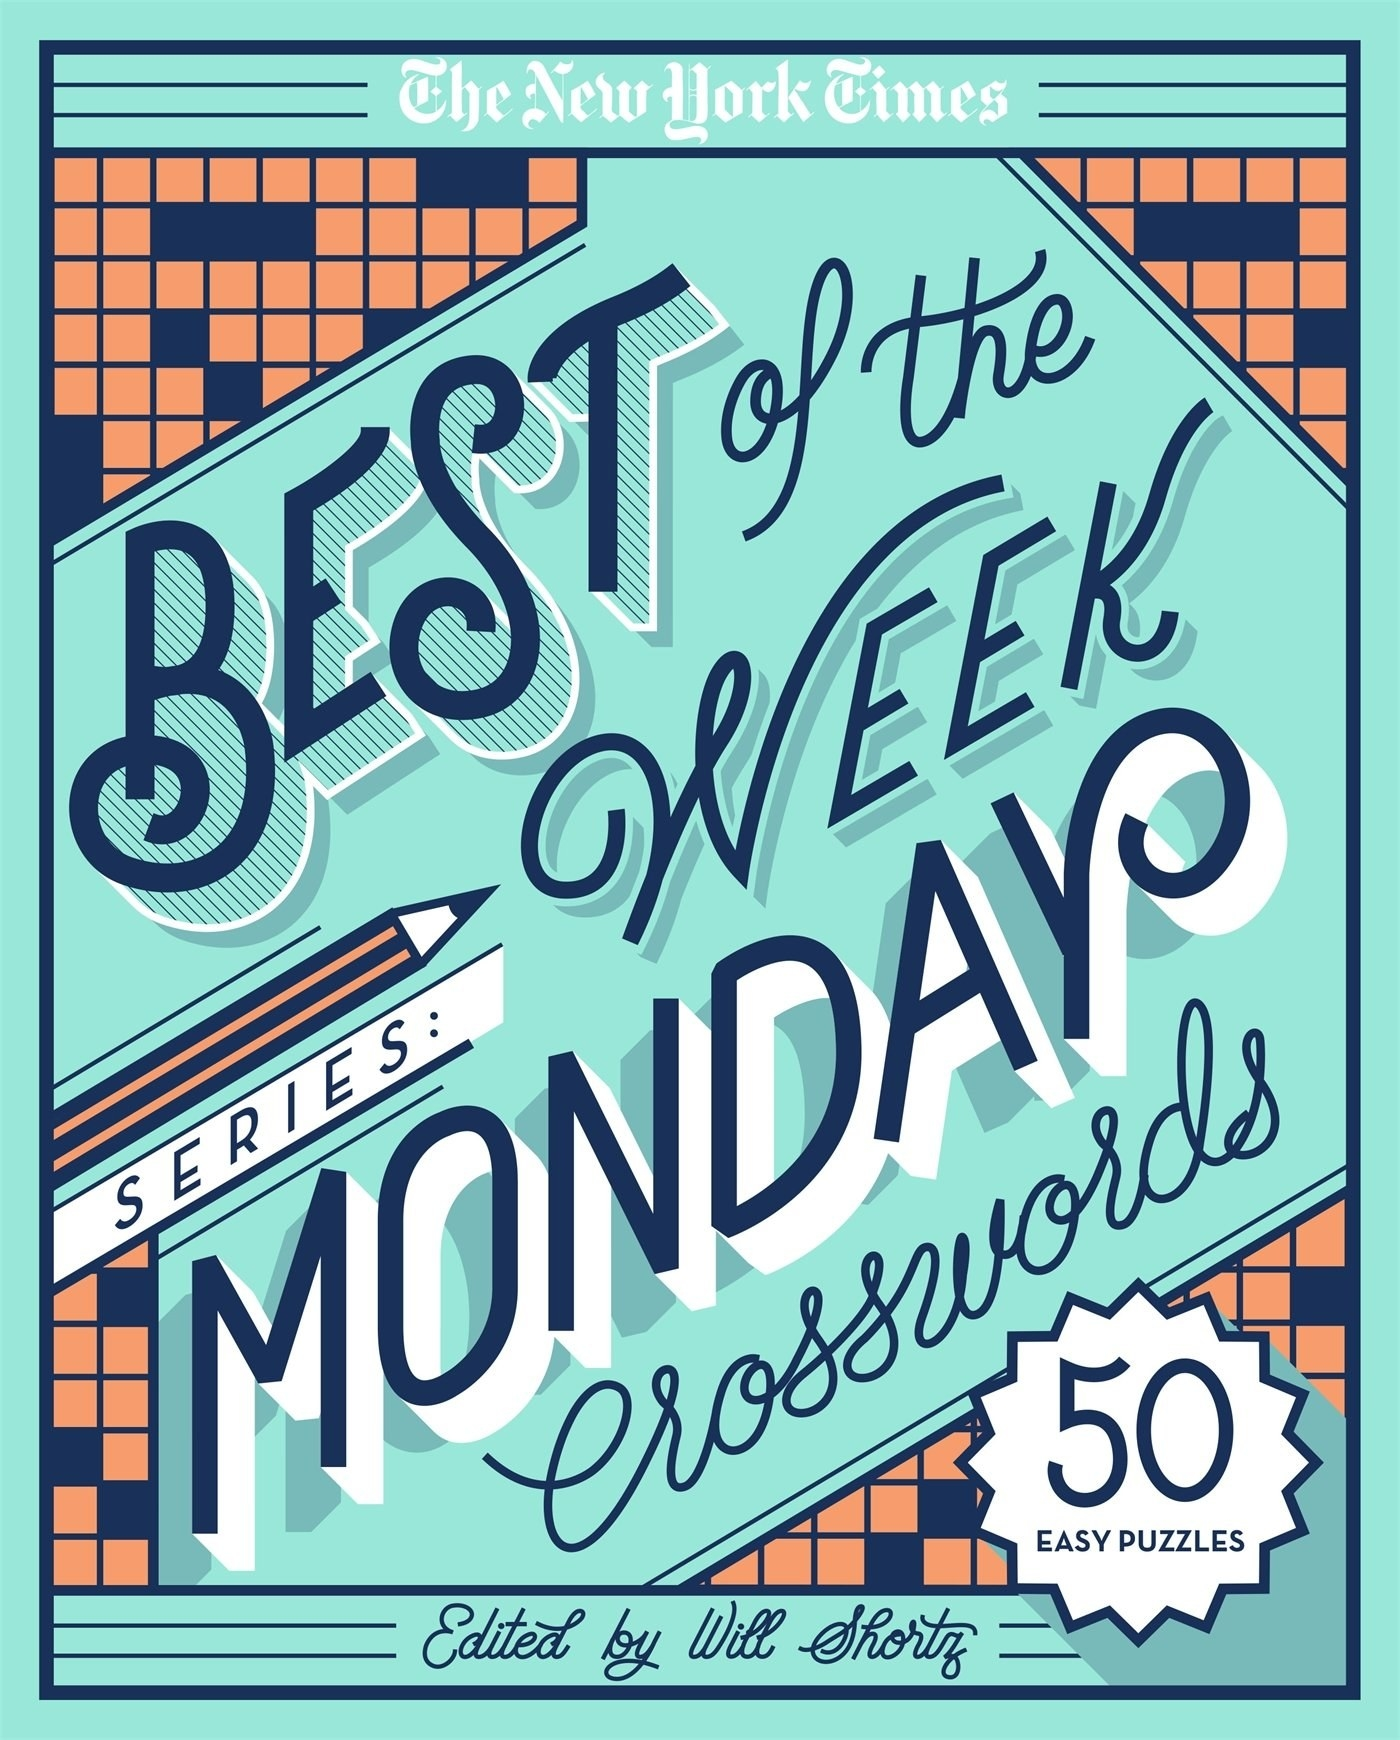 The cover of the Monday crossword book